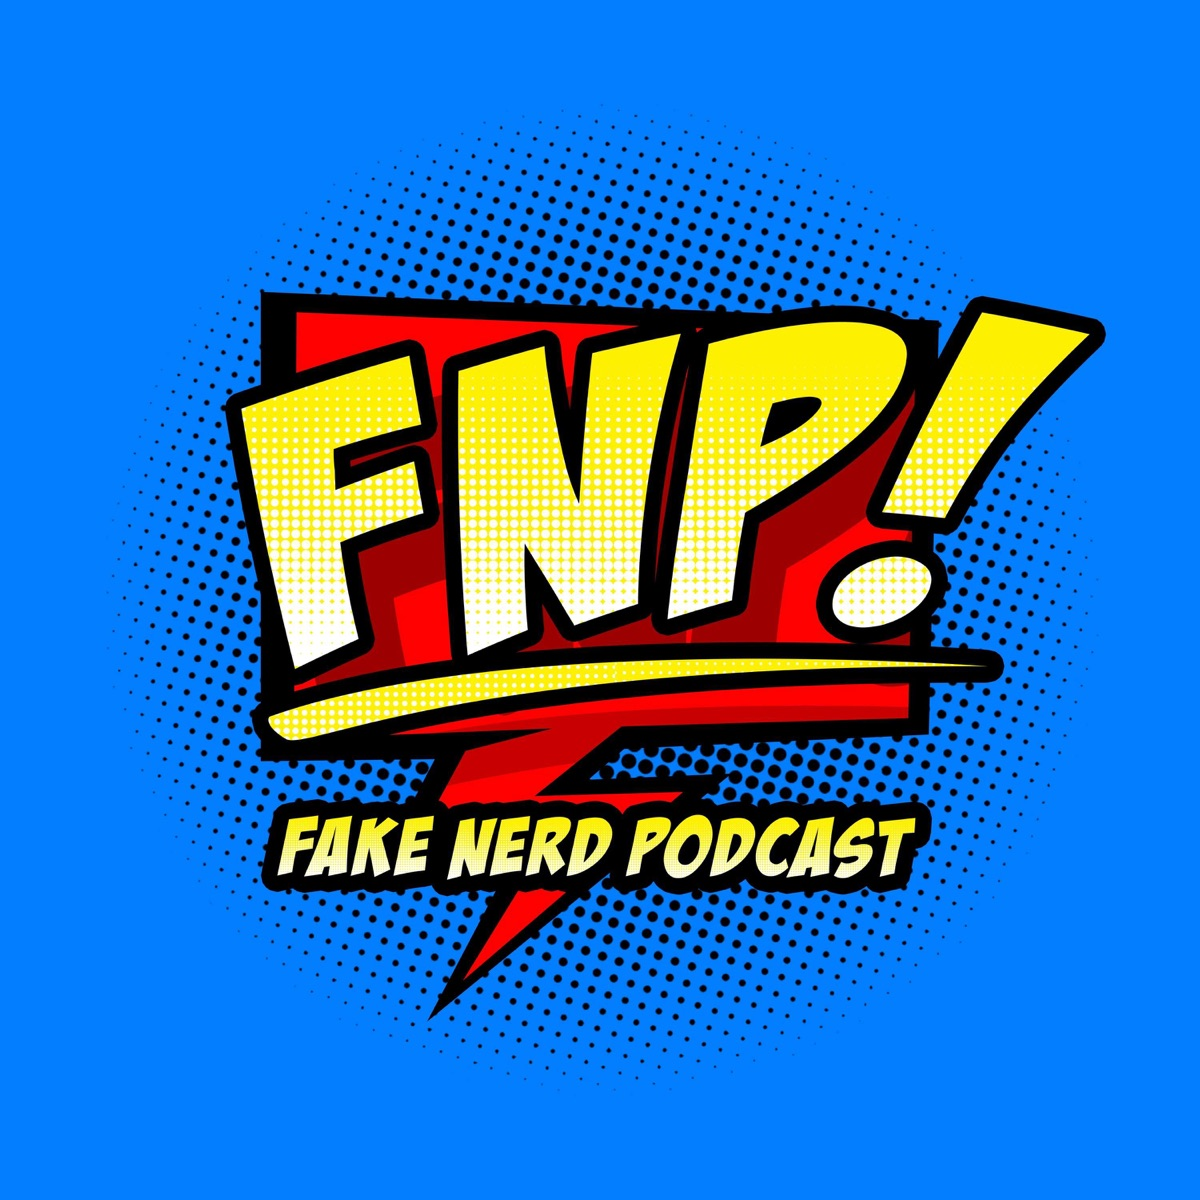 Fake Nerd Podcast